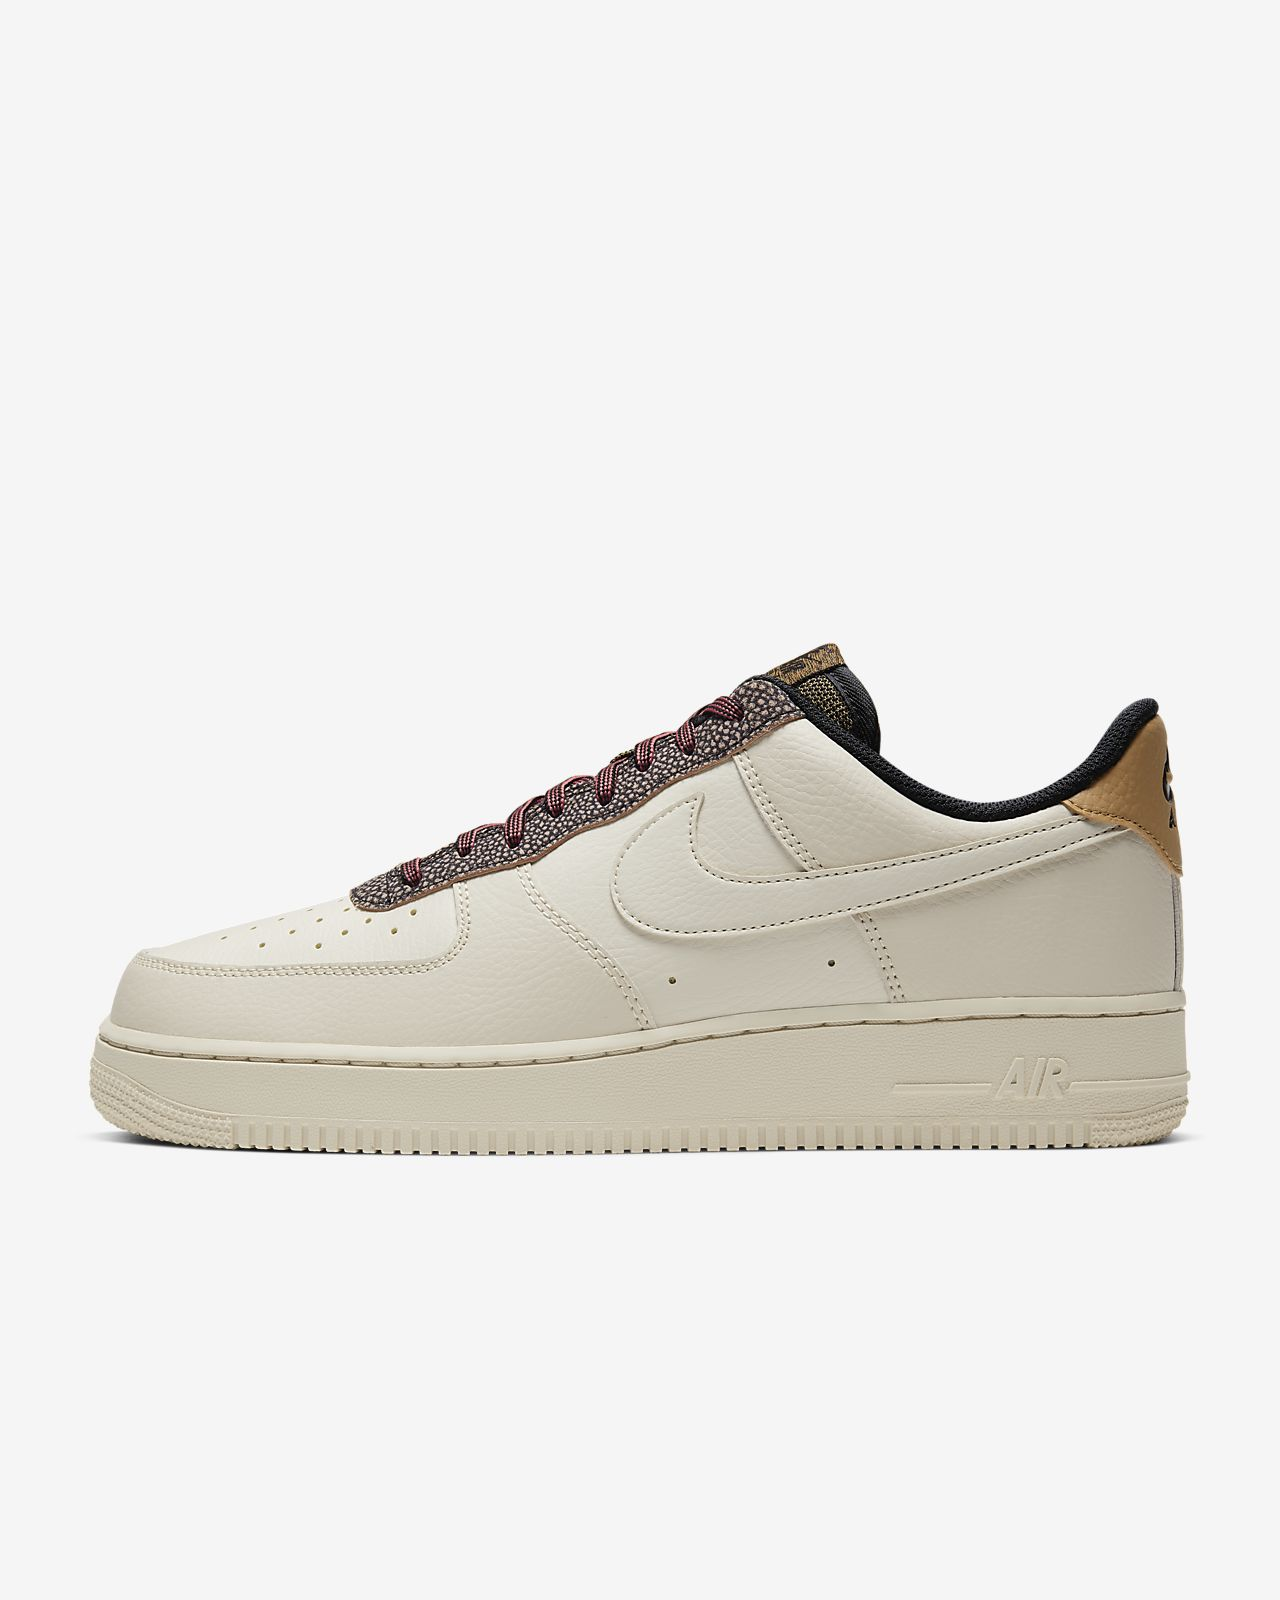 Nike Air Force 1 low LV8 FOSSIL